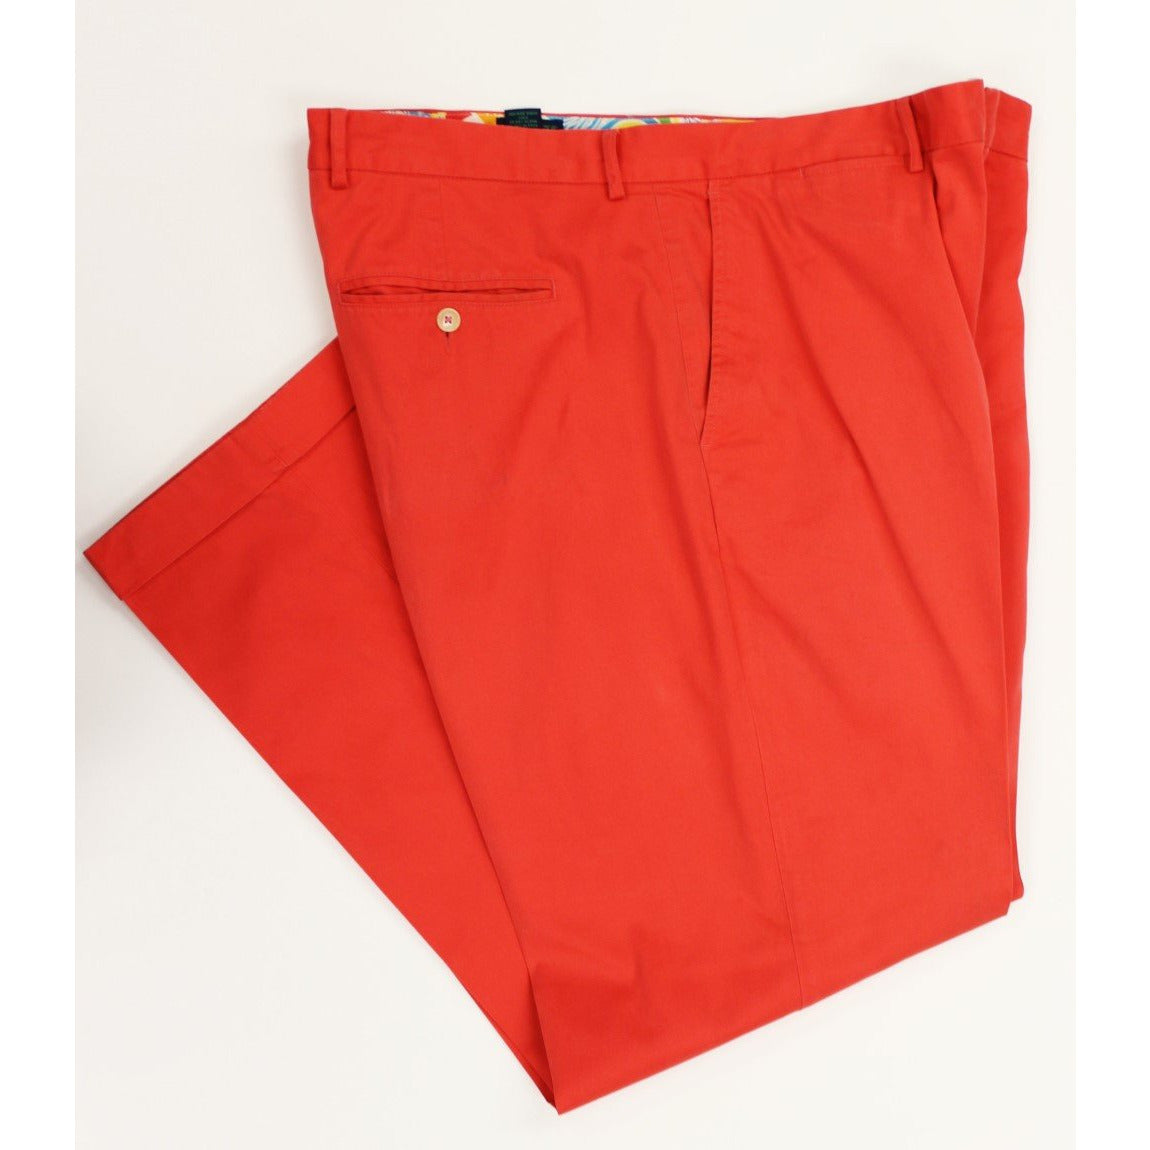 Lilly Pulitzer Red Trousers